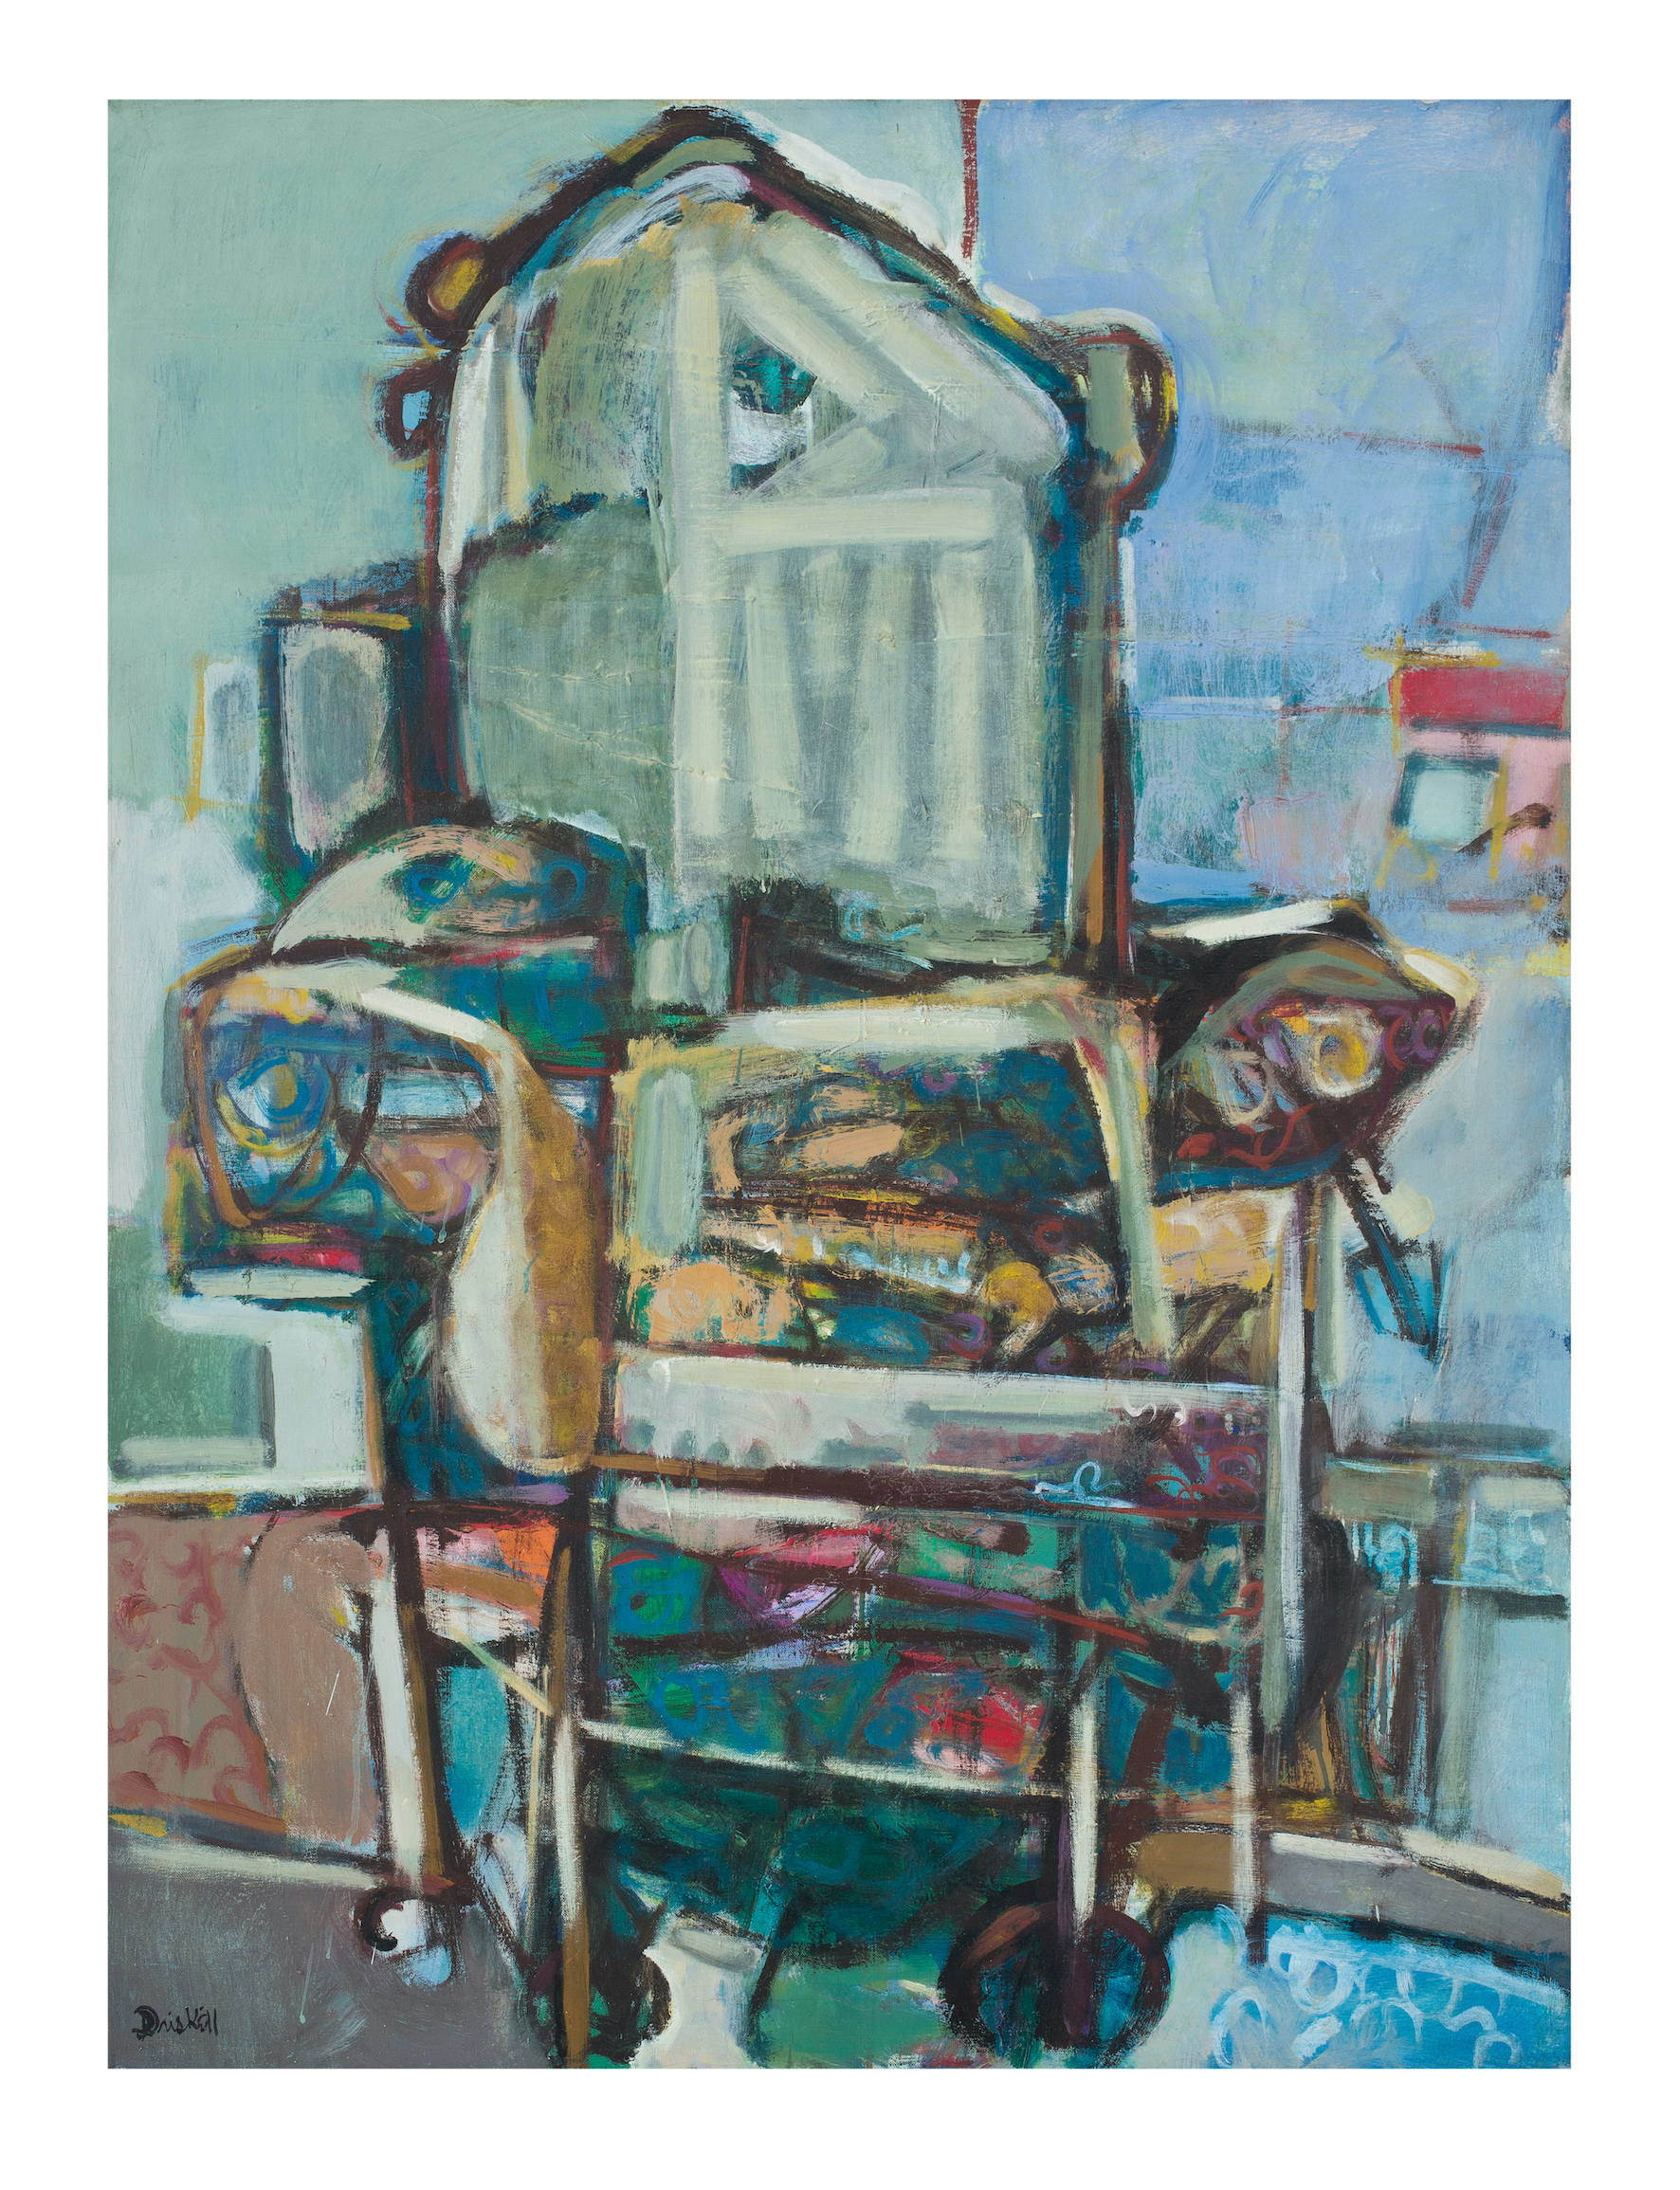 Antique Chair, 1975. © Estate of David C Driskell, courtesy DC Moore Gallery, New York